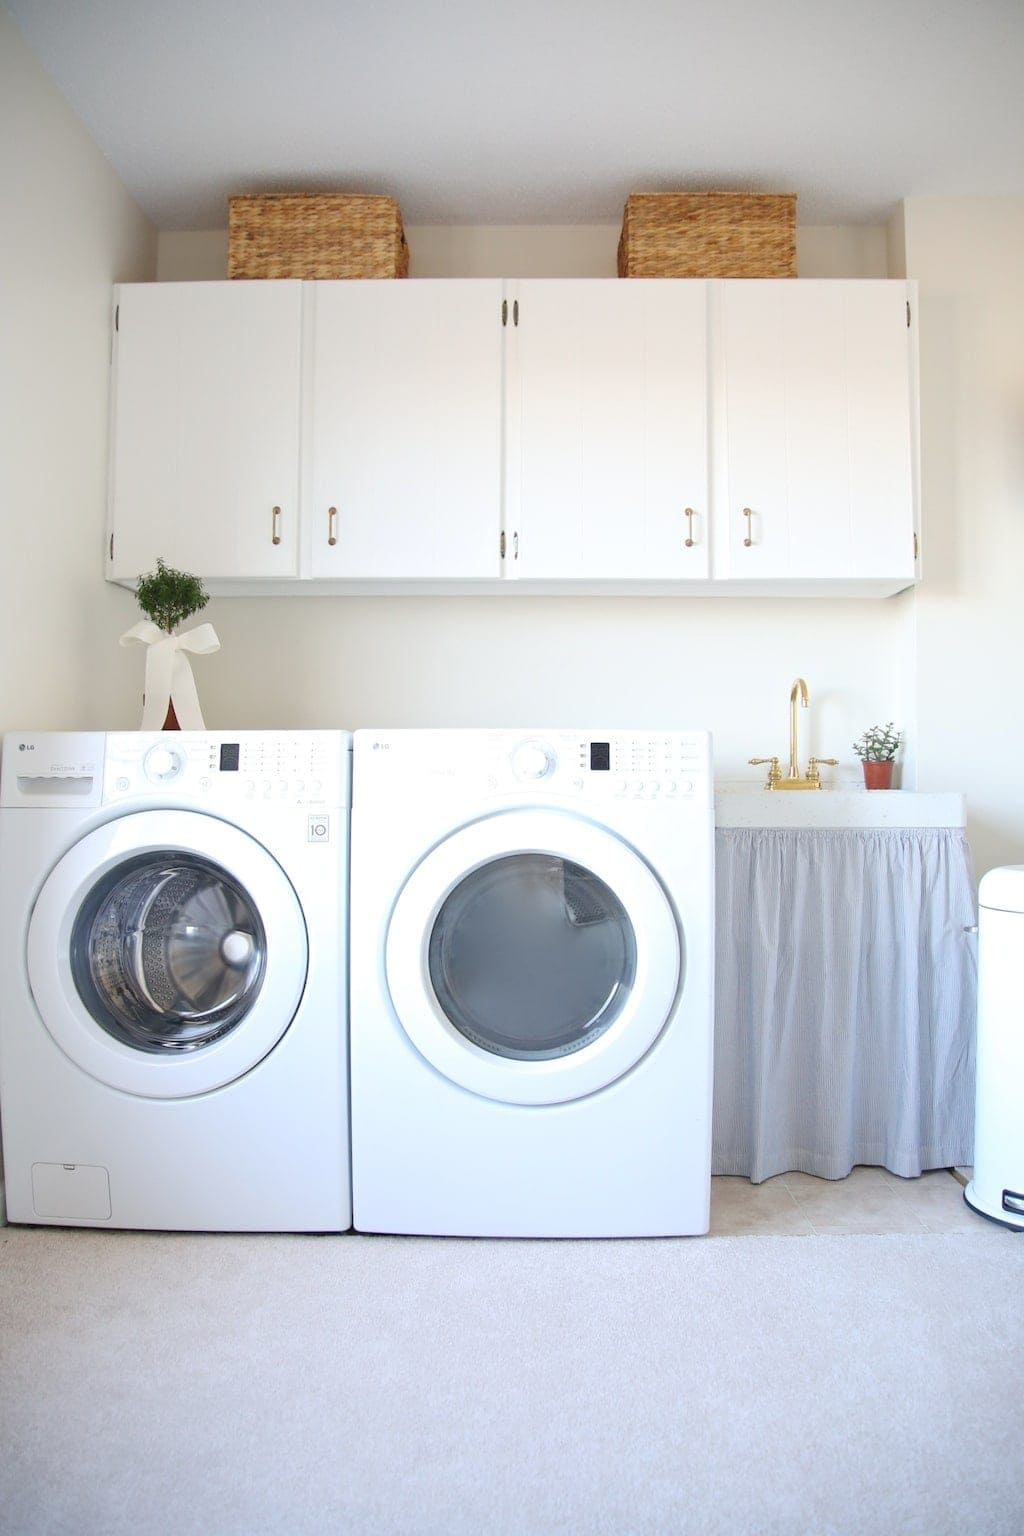 add function storage to your laundry room with these laundry room decor ideas - Laundry Room Decor